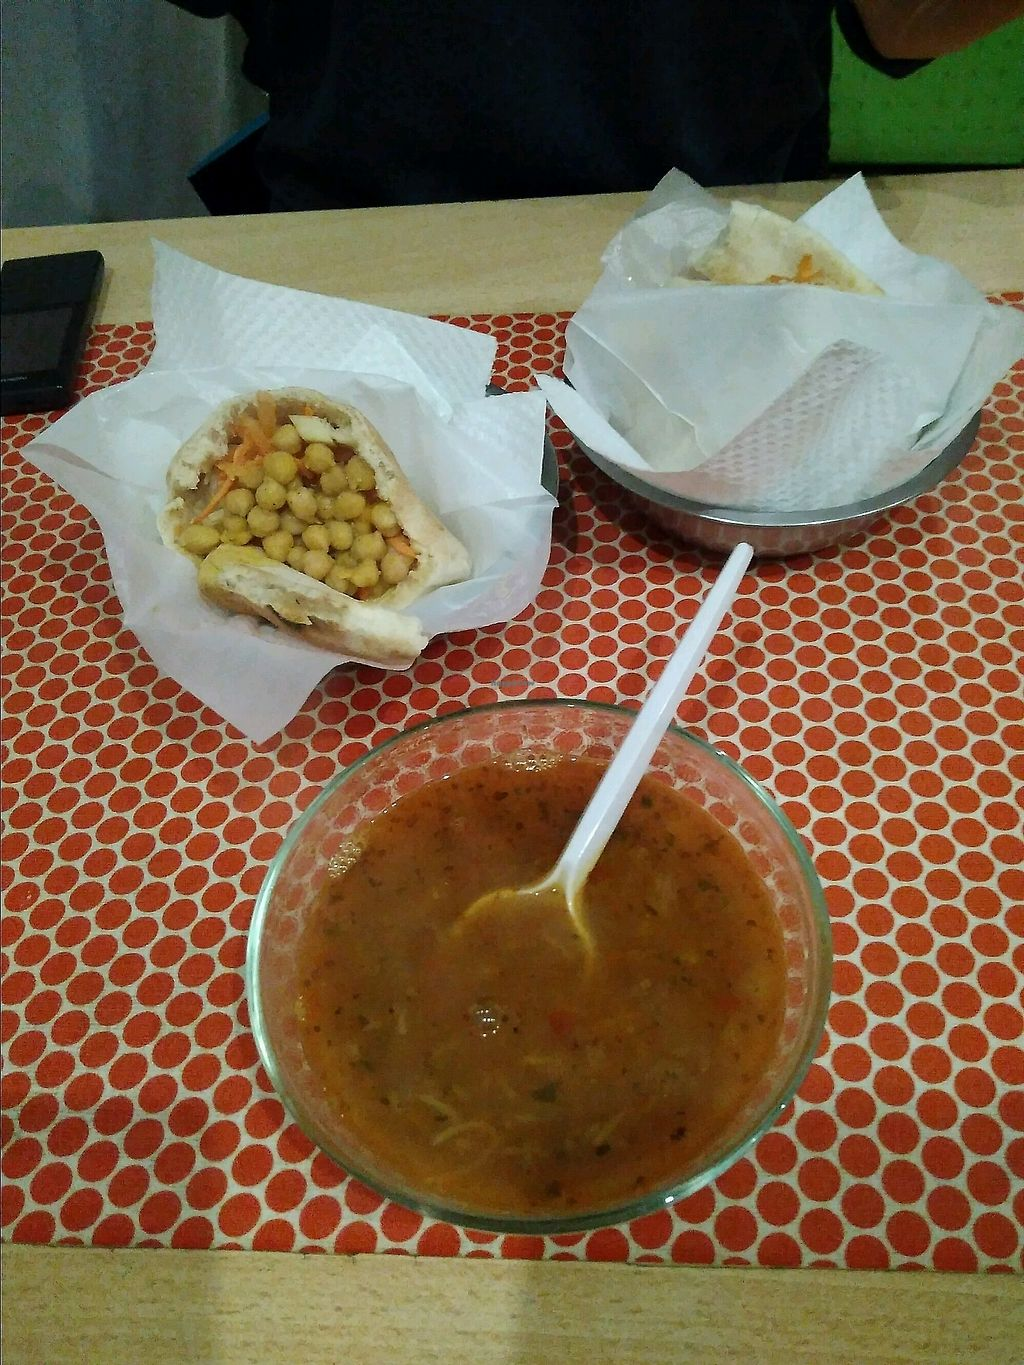 """Photo of TiK TaK Hummus Bar  by <a href=""""/members/profile/RobertBosy"""">RobertBosy</a> <br/>pita with chickpeas & falafel & red lentil soup <br/> November 13, 2017  - <a href='/contact/abuse/image/30467/325368'>Report</a>"""